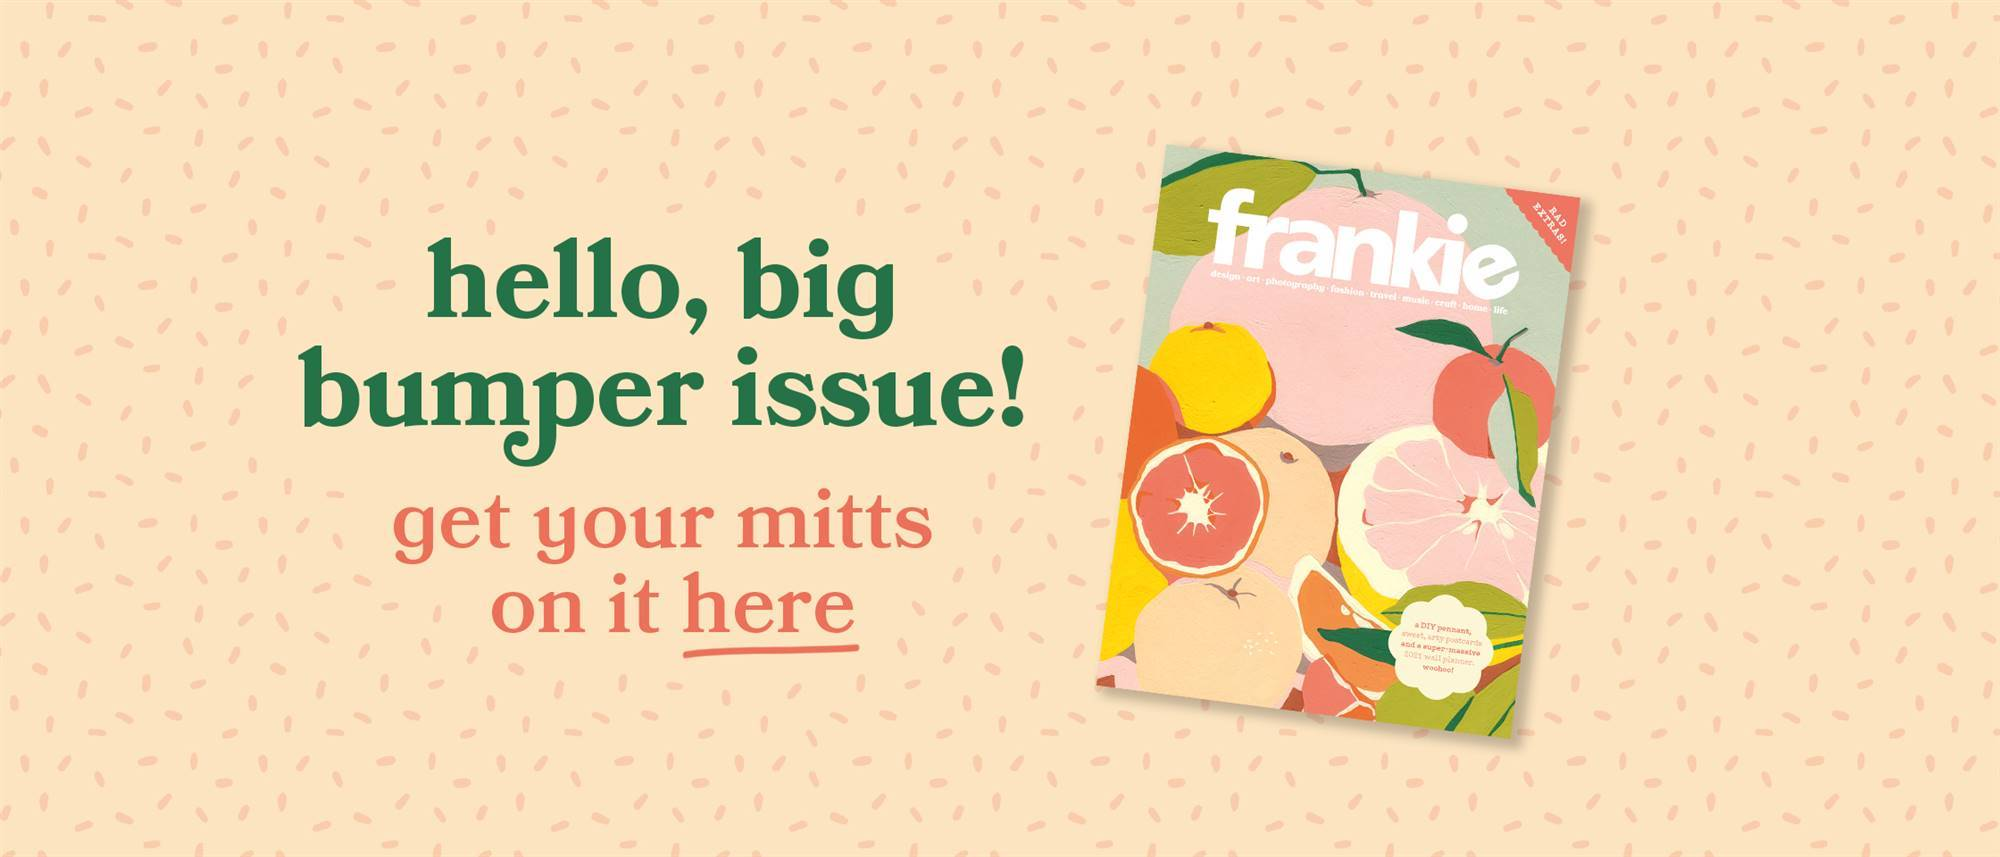 issue 99 is here!